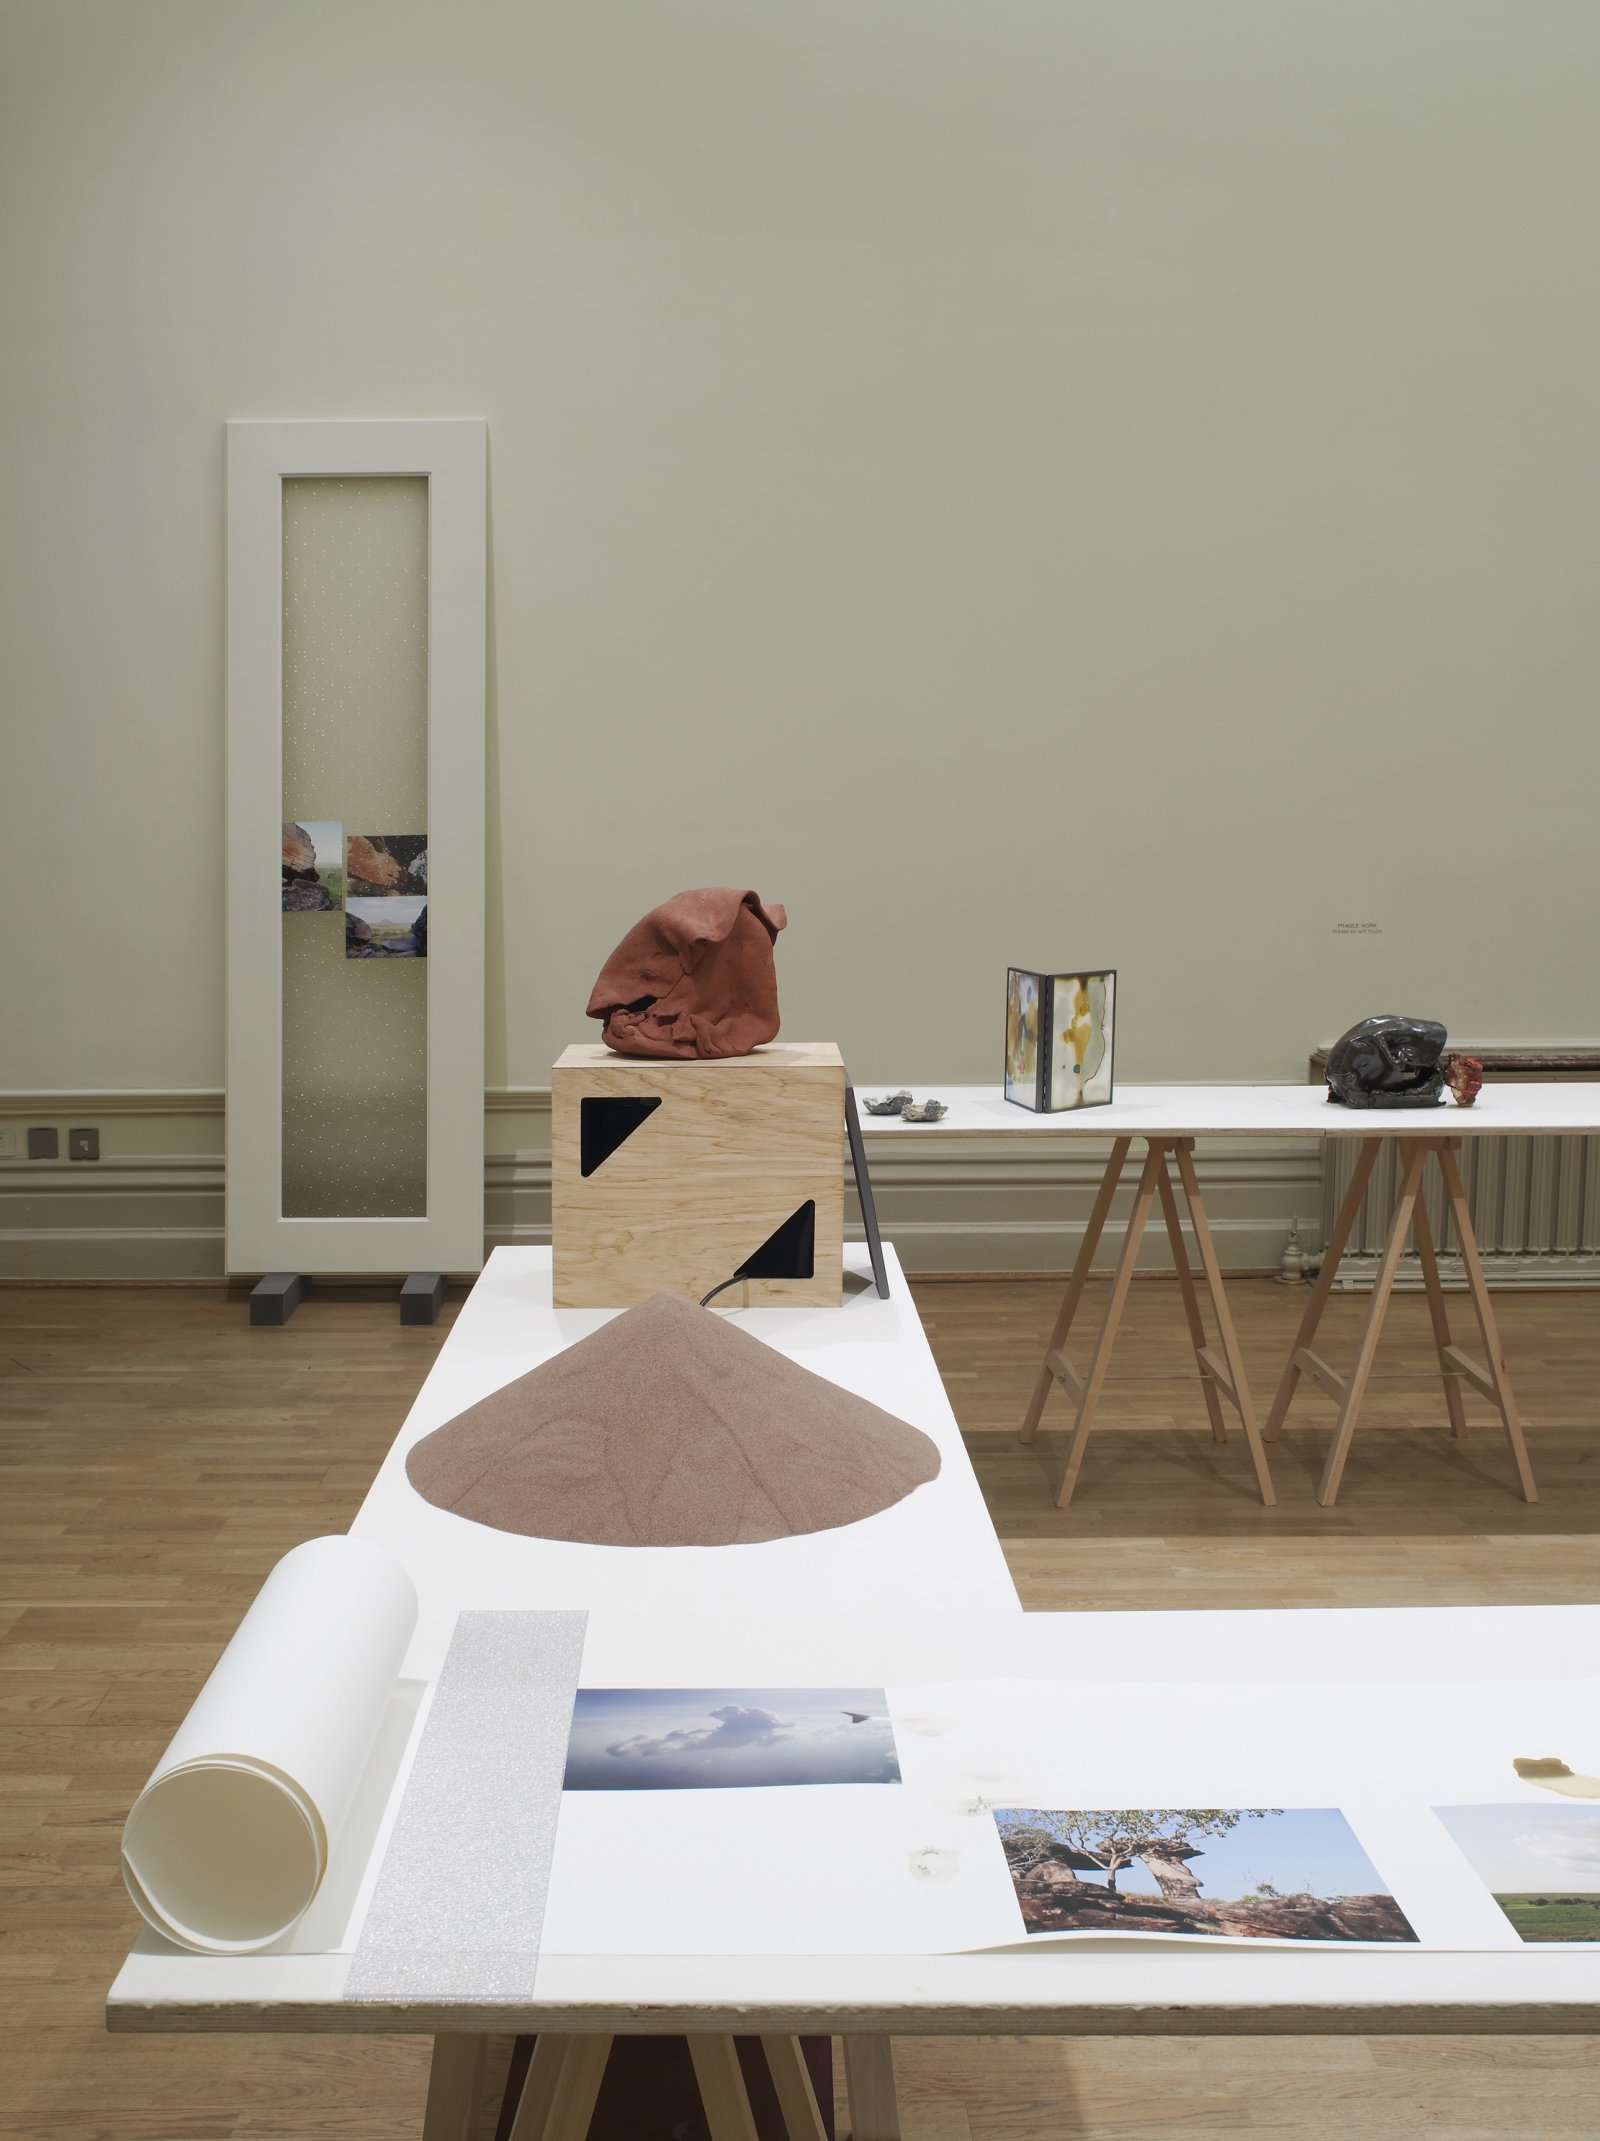 Christina Mackie, The Judges III (detail), 2013, mixed media, dimensions variable. Installation view, Nottingham Castle Museum, 2013 by Christina Mackie